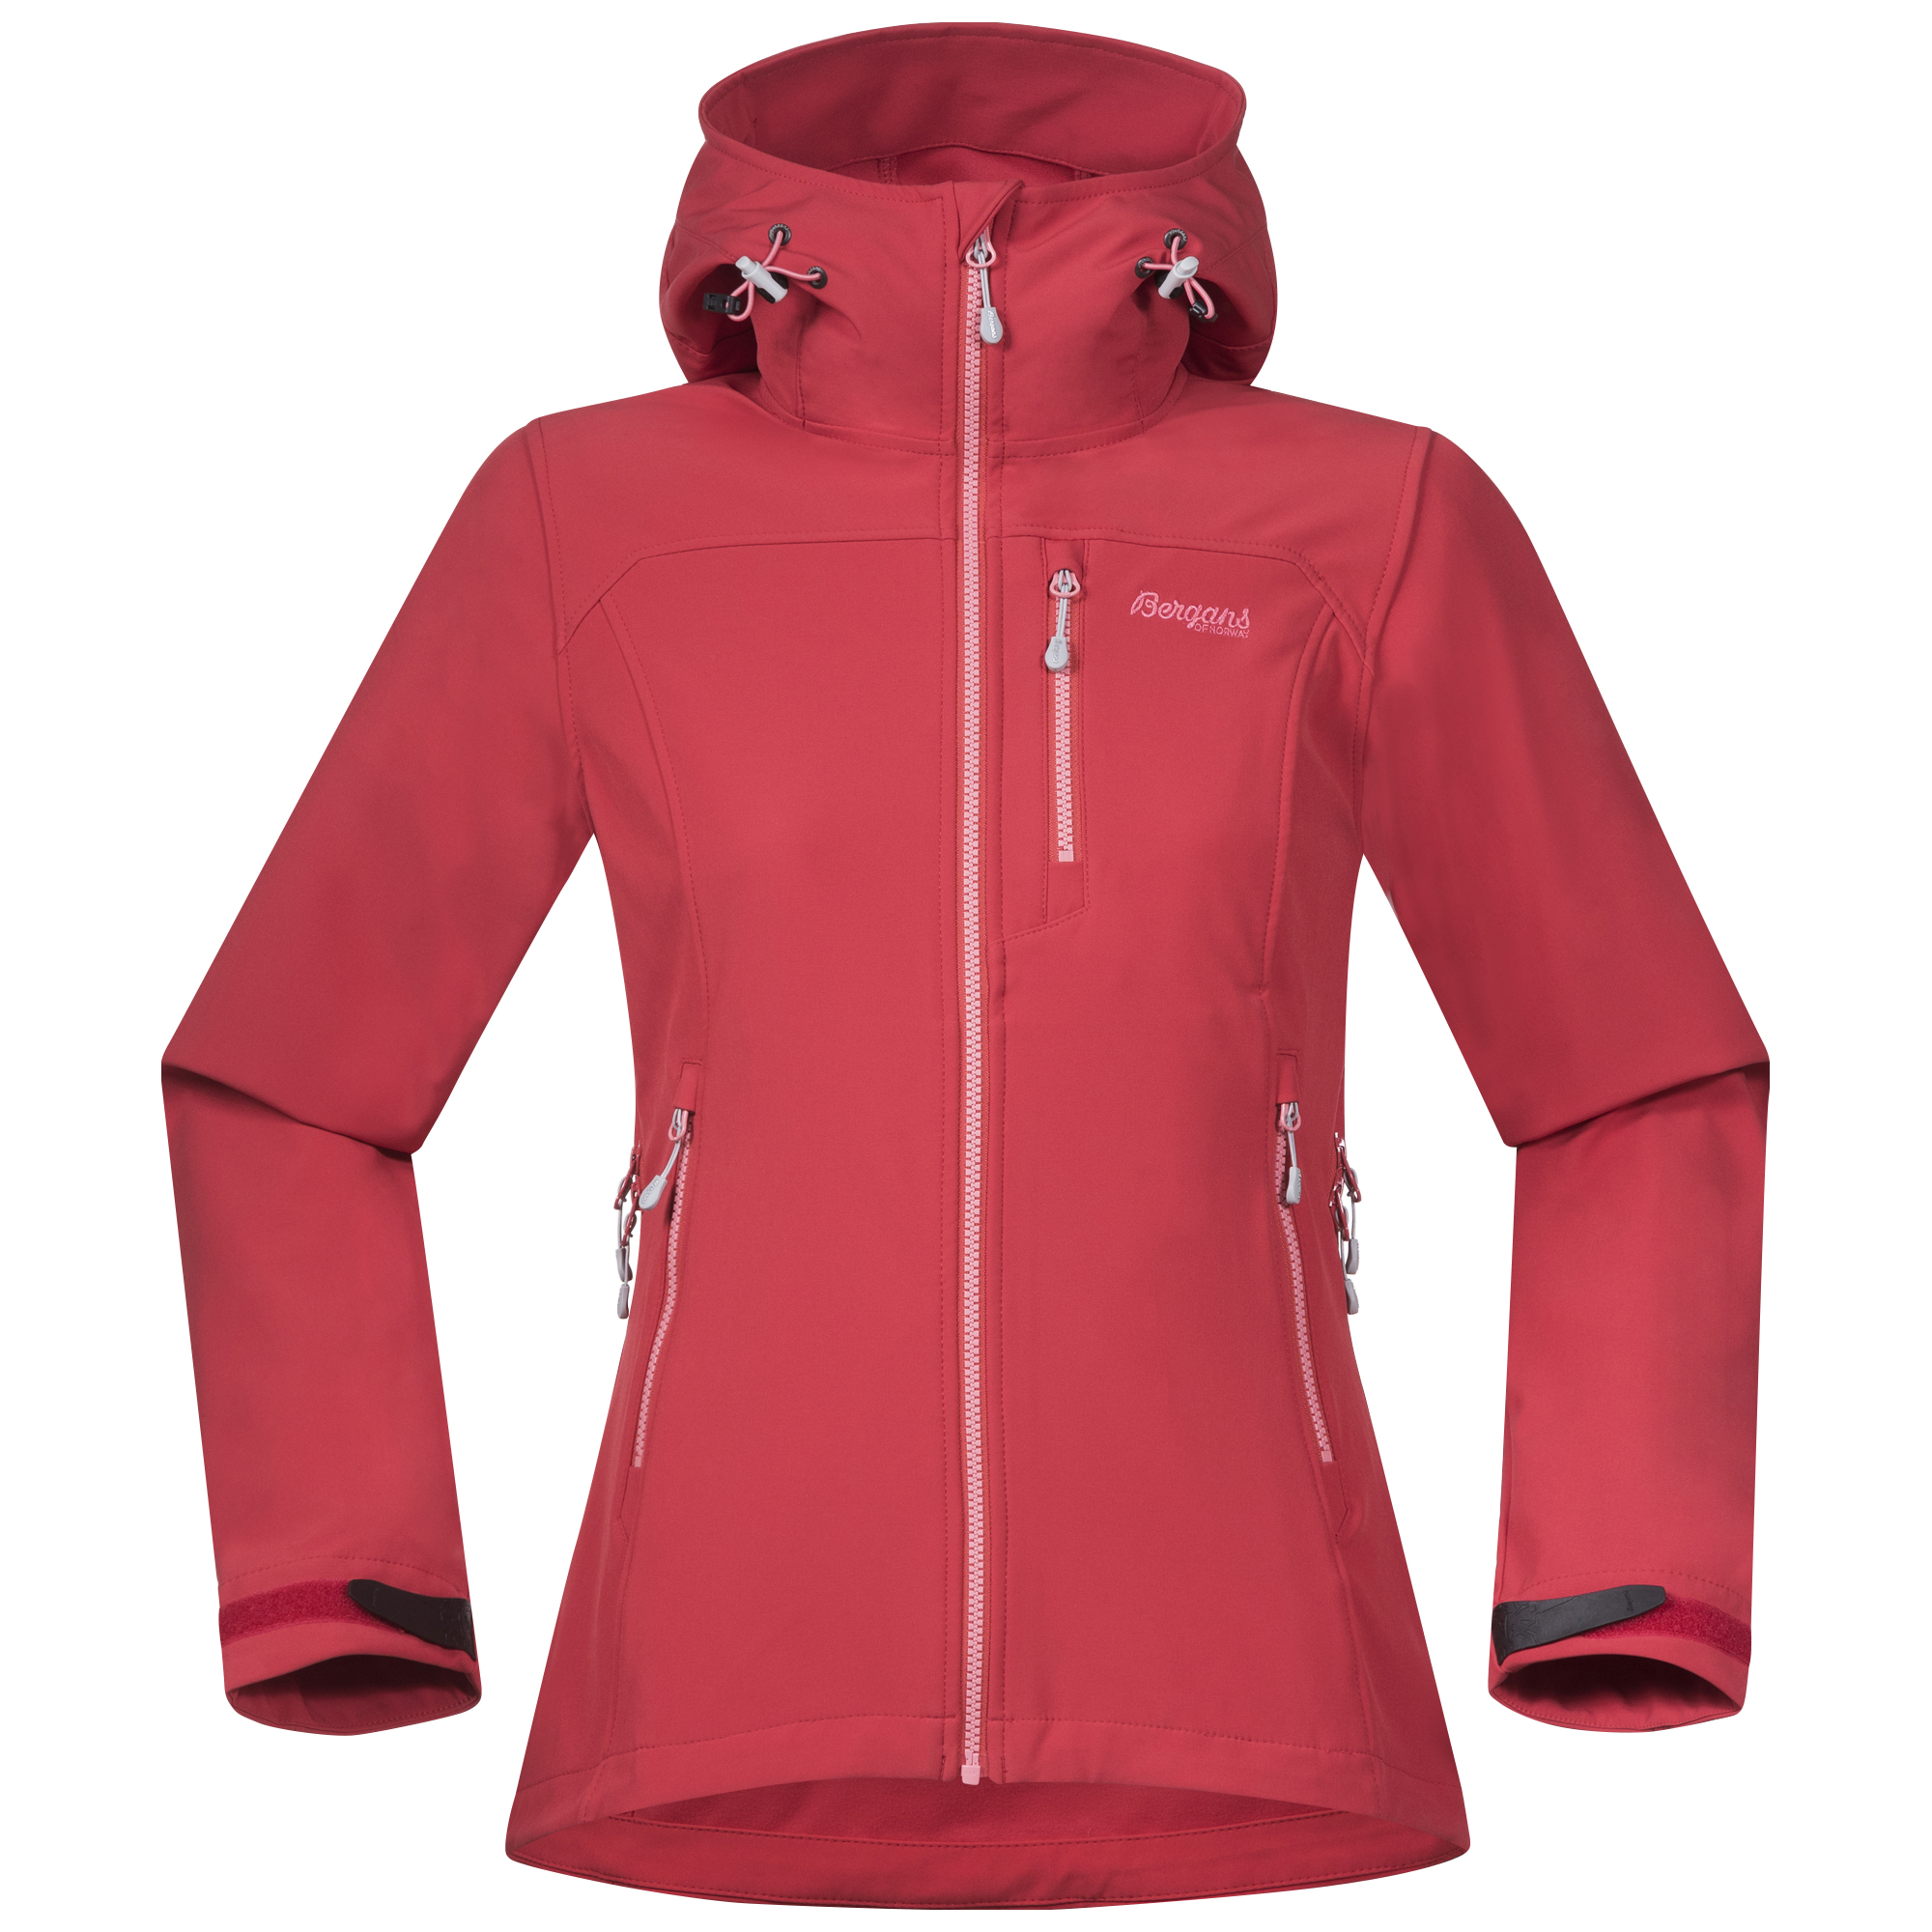 Bergans of Norway Geaca softshell Bergans Stegaros Lady - Rosu